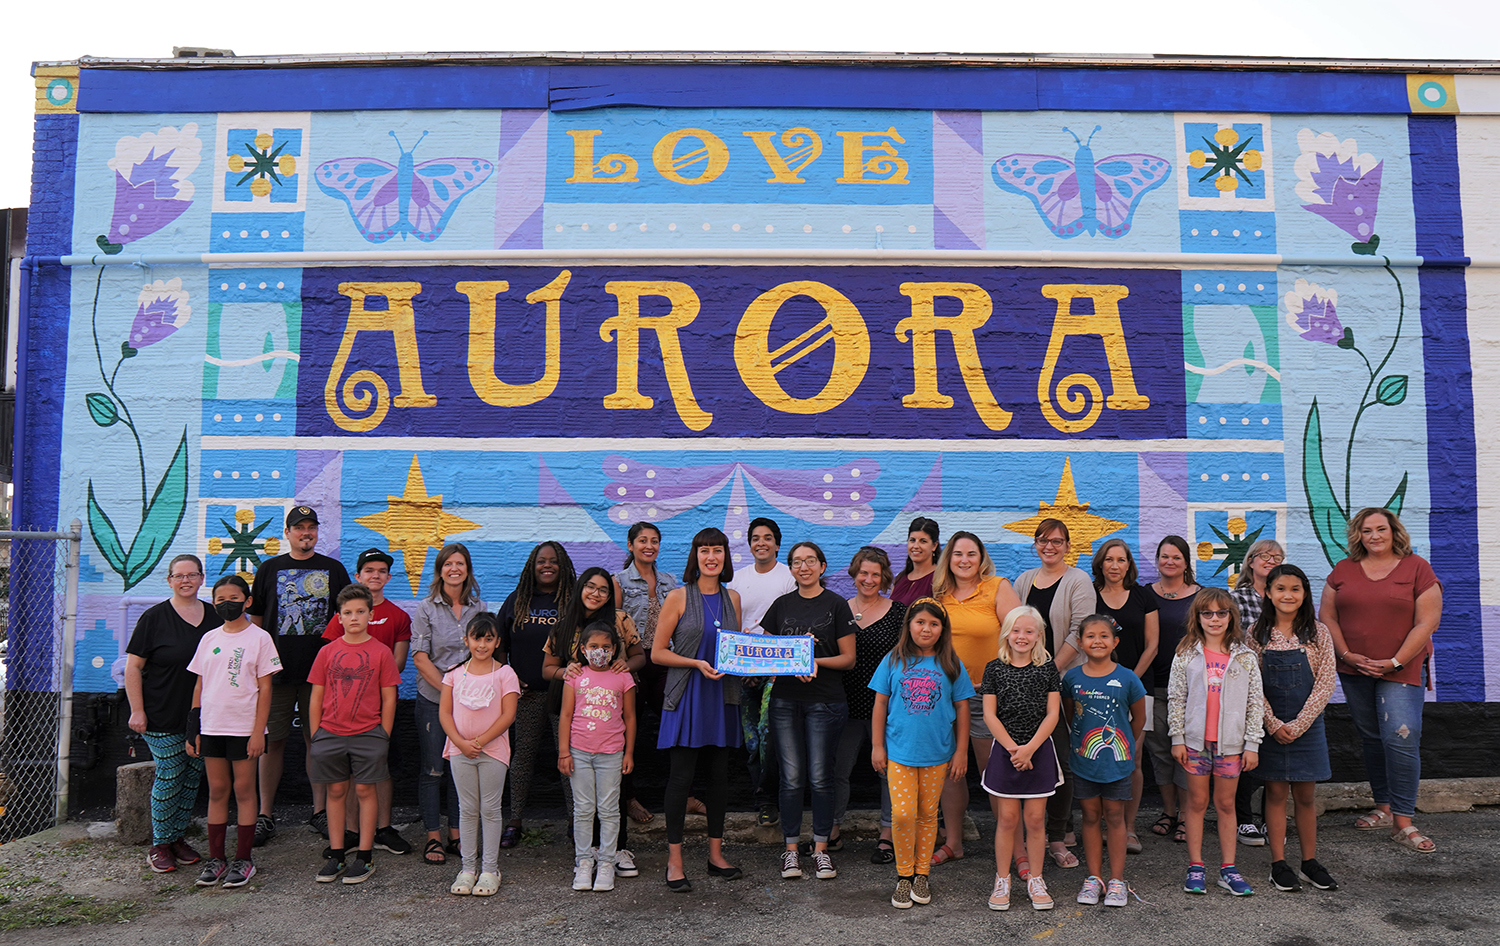 large mural painted by community volunteers in Aurora, IL lead by artists Laura Lynne & Catalina Diaz